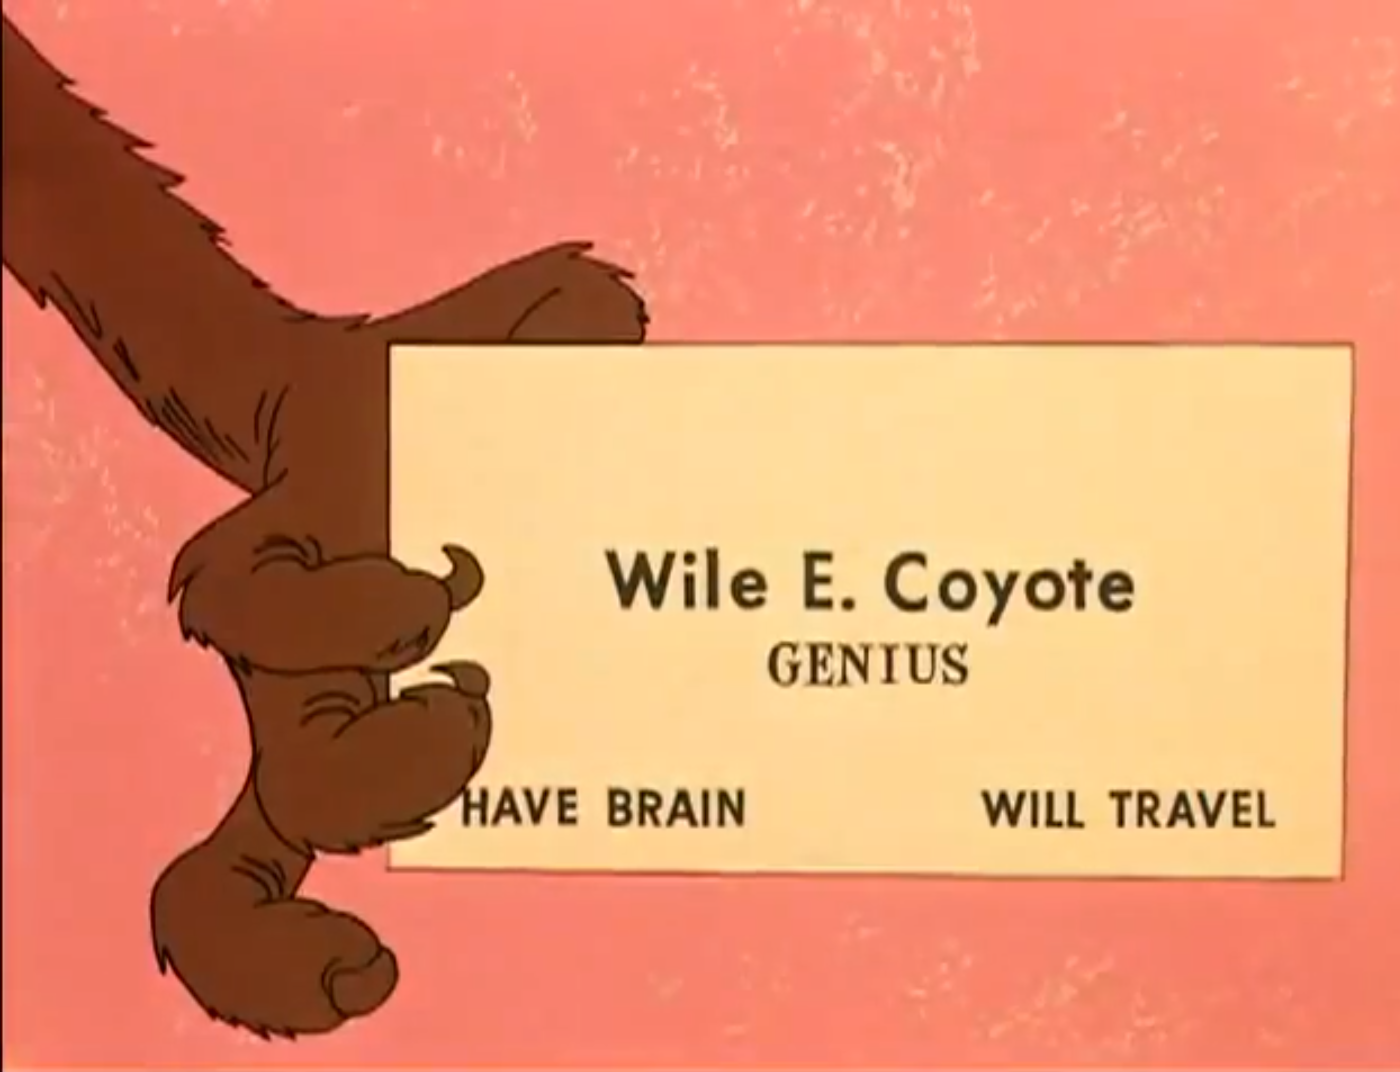 wile-e-coyte.png